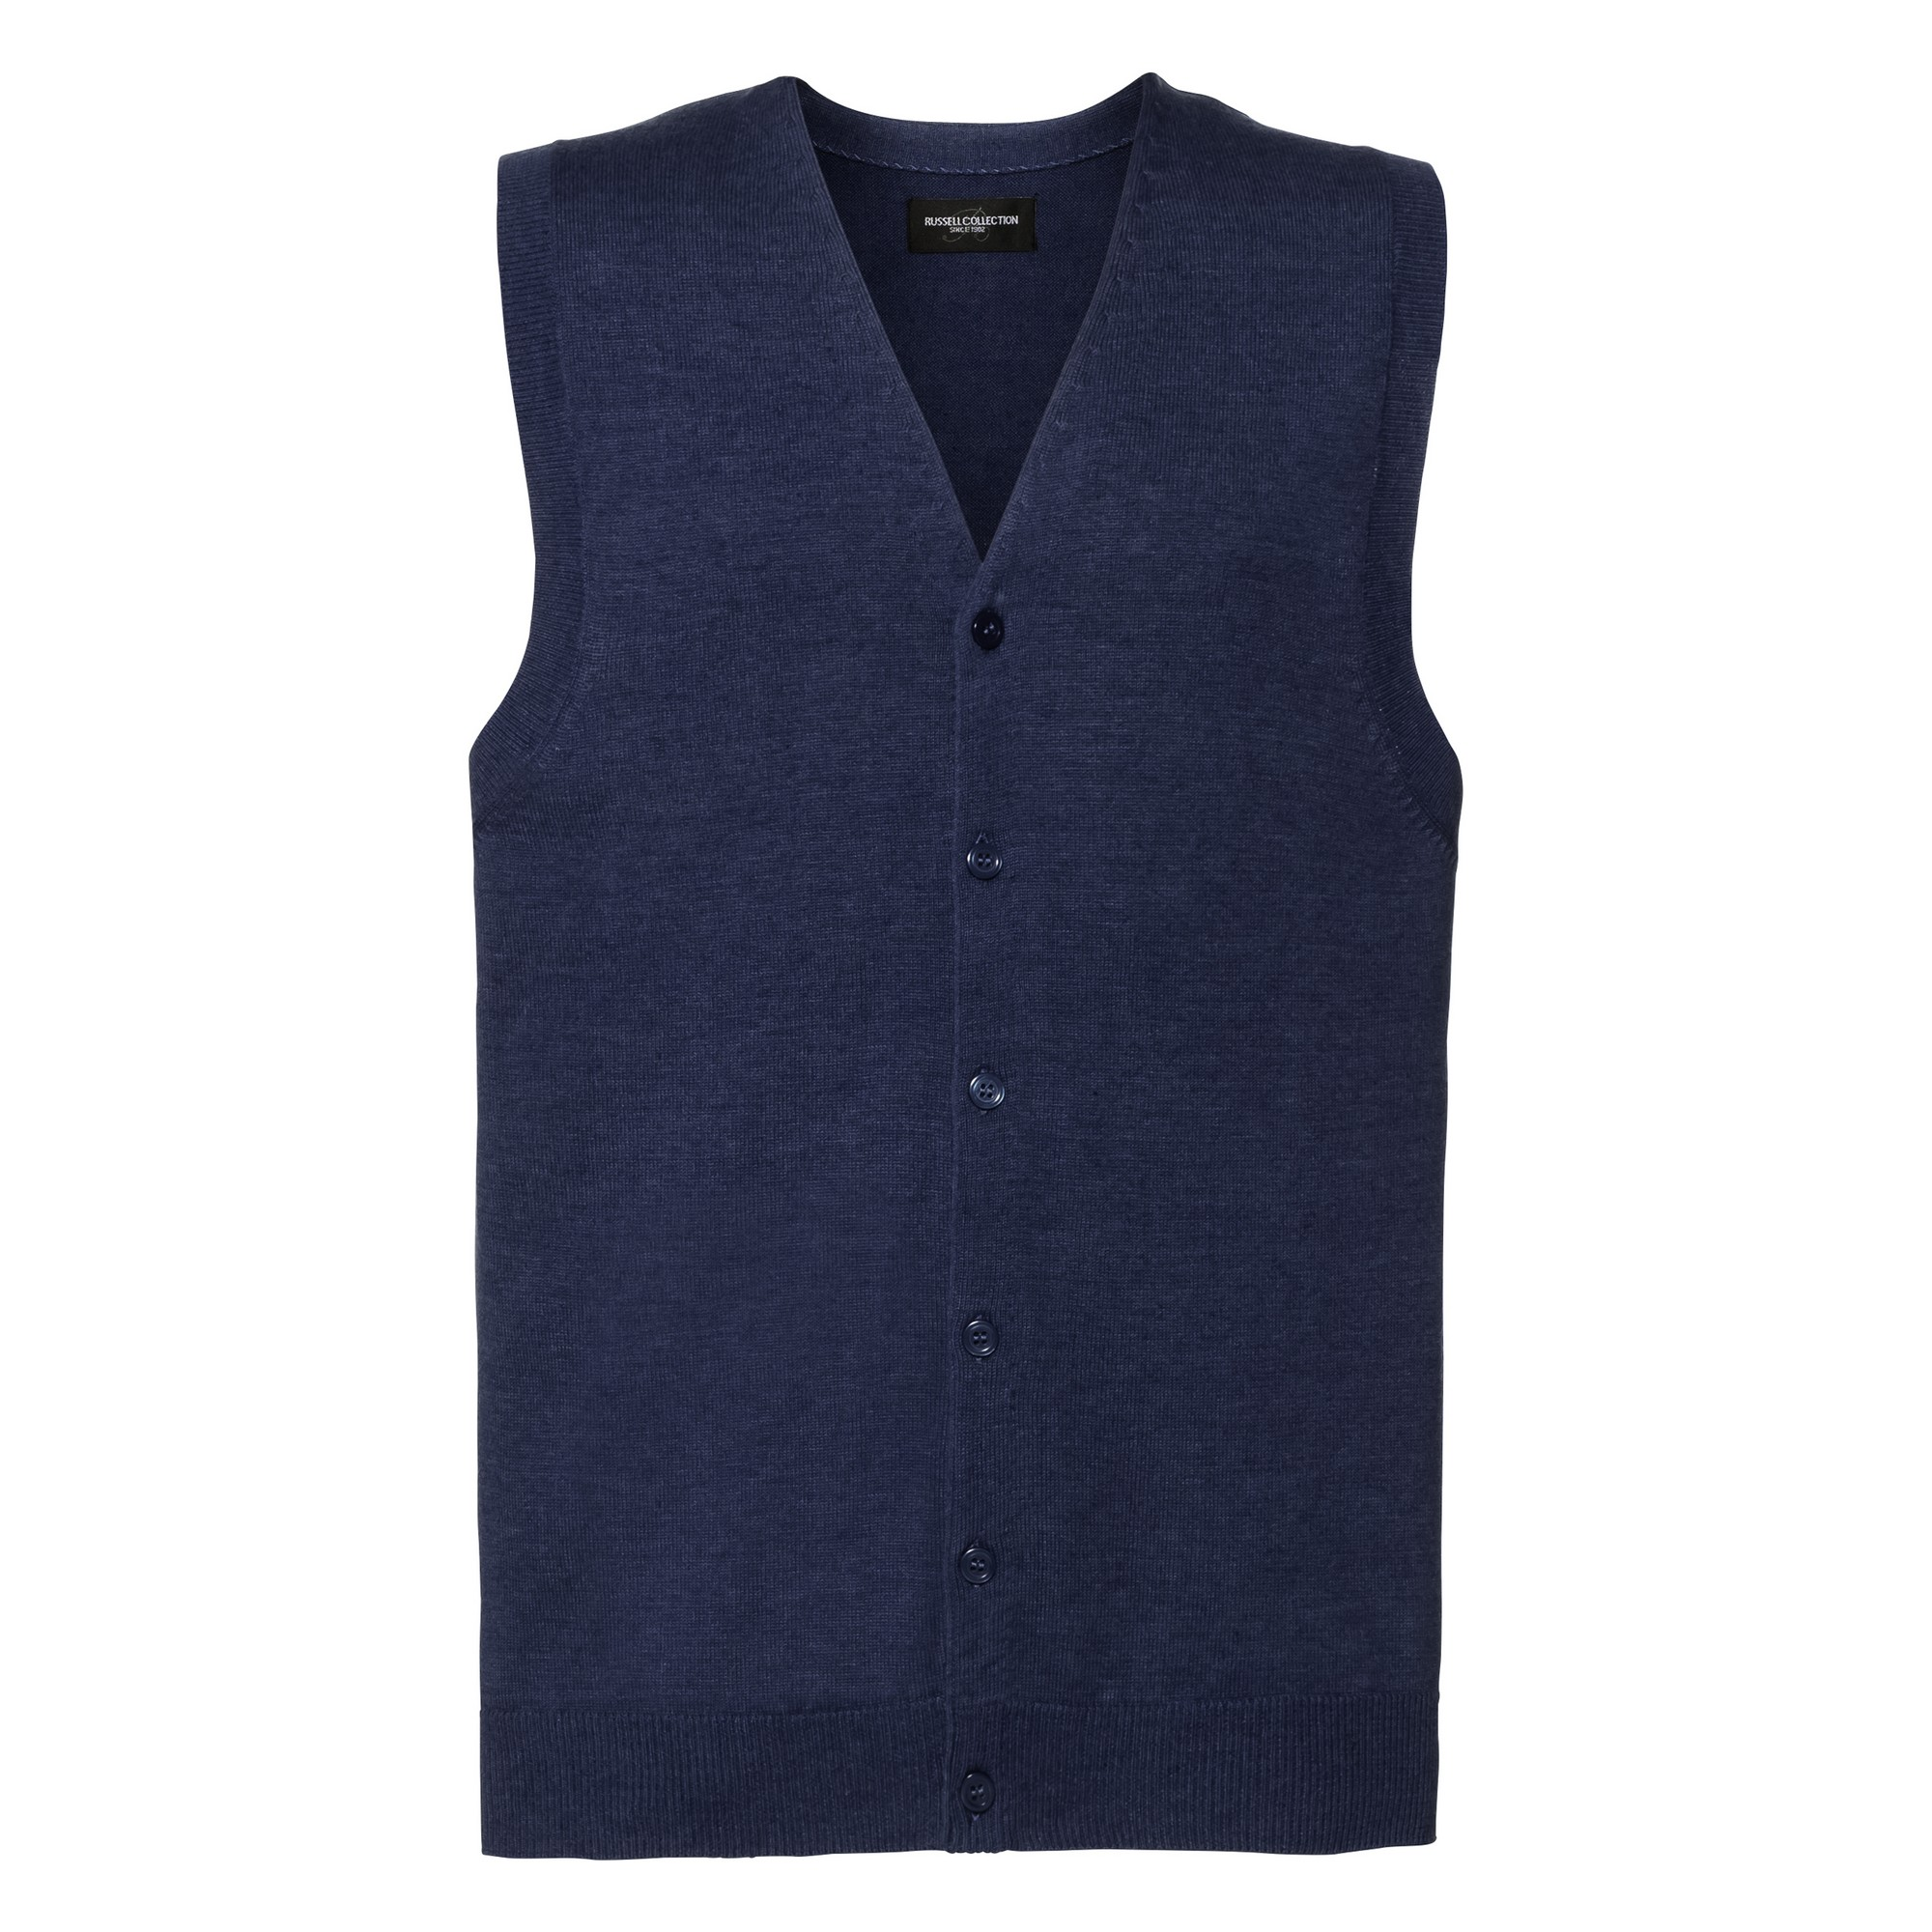 Russell Collection Mens V-neck Sleeveless Knitted Cardigan (S) (Denim Marl)